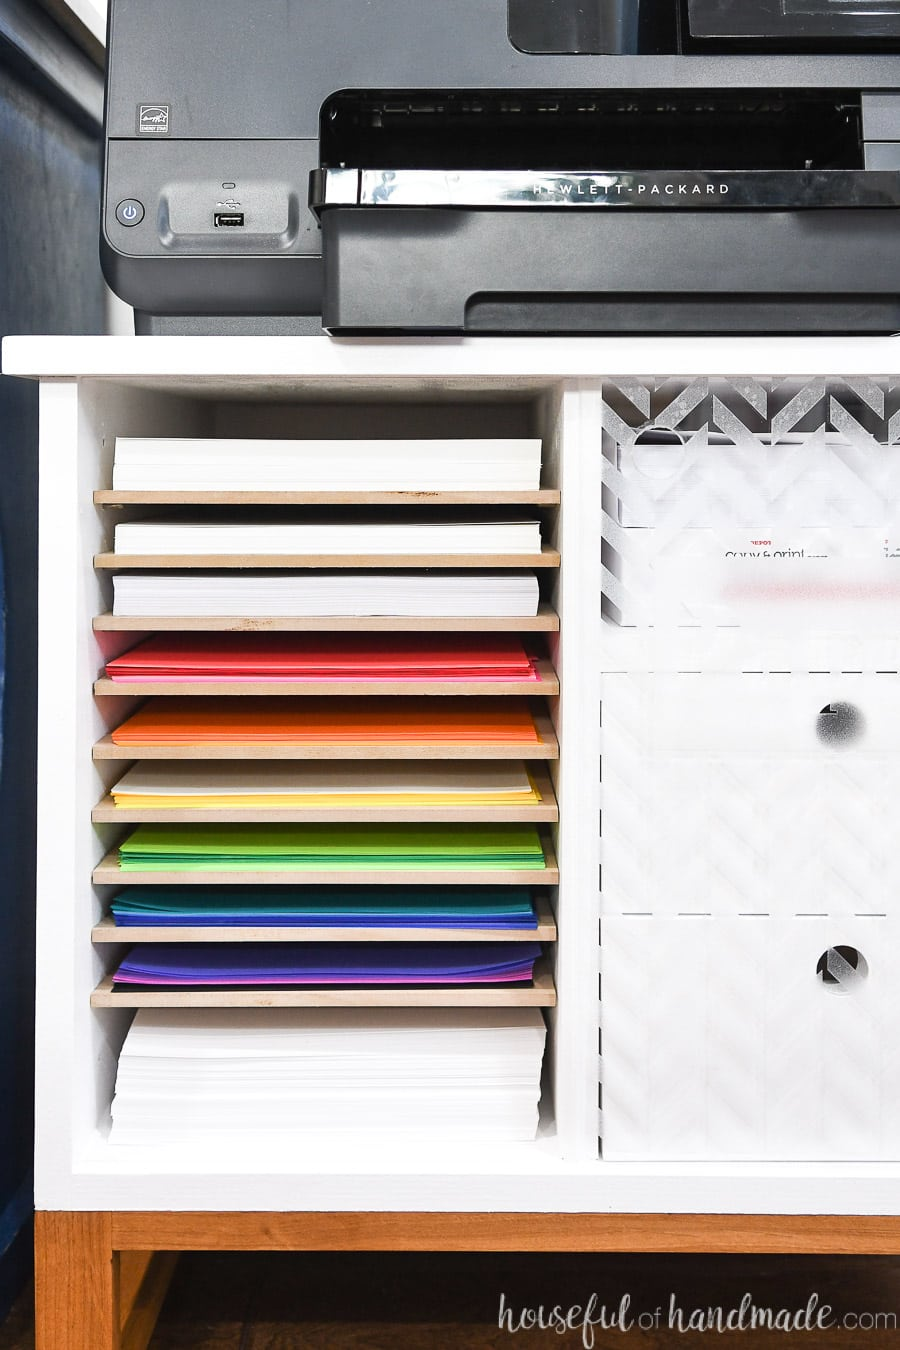 Close up of the paper storage shelves in the printer table.